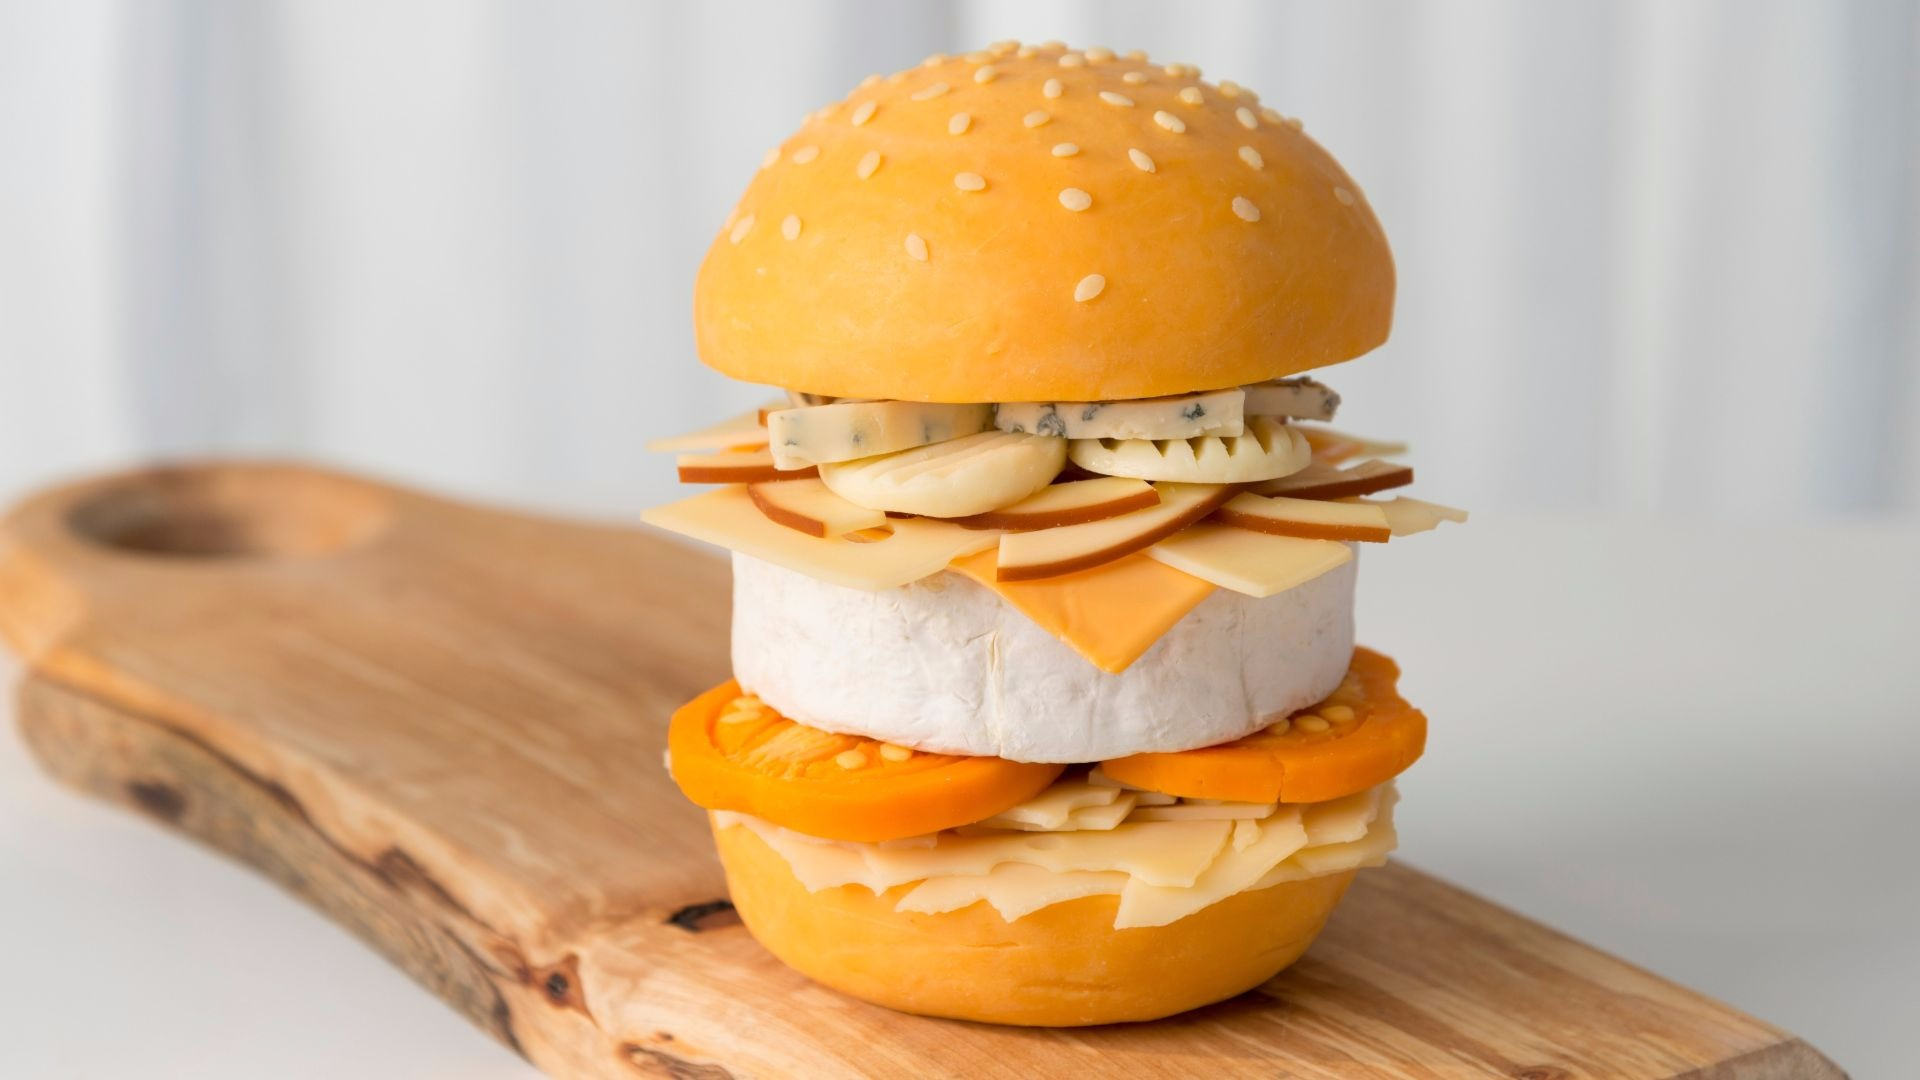 A burger made out of cheese.